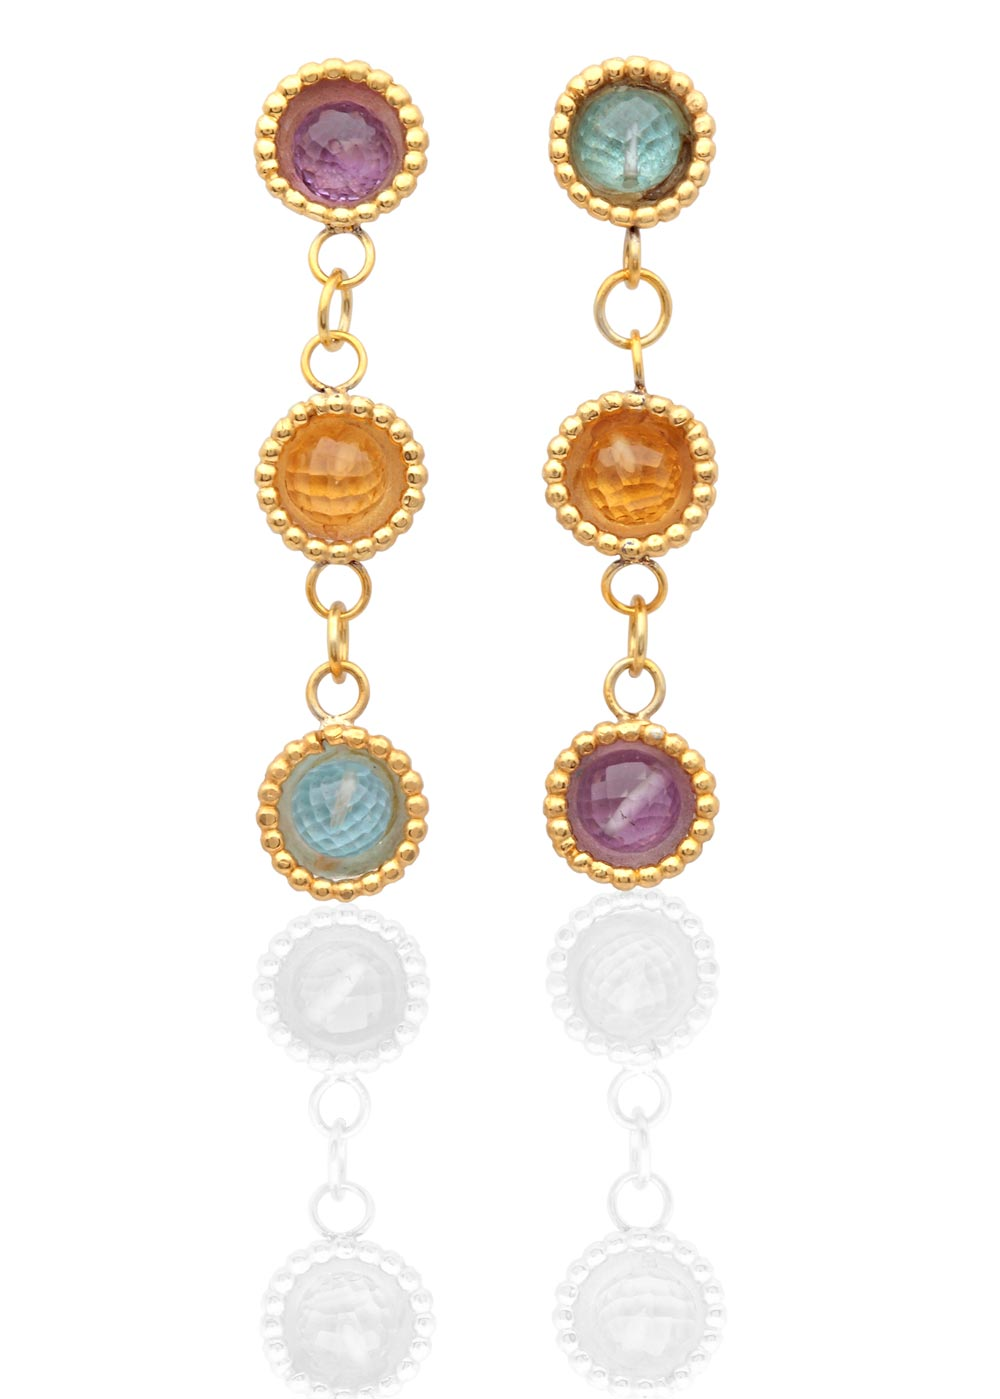 Byzantine 3 drop dome earrings with amethyst, blue topaz & citrine